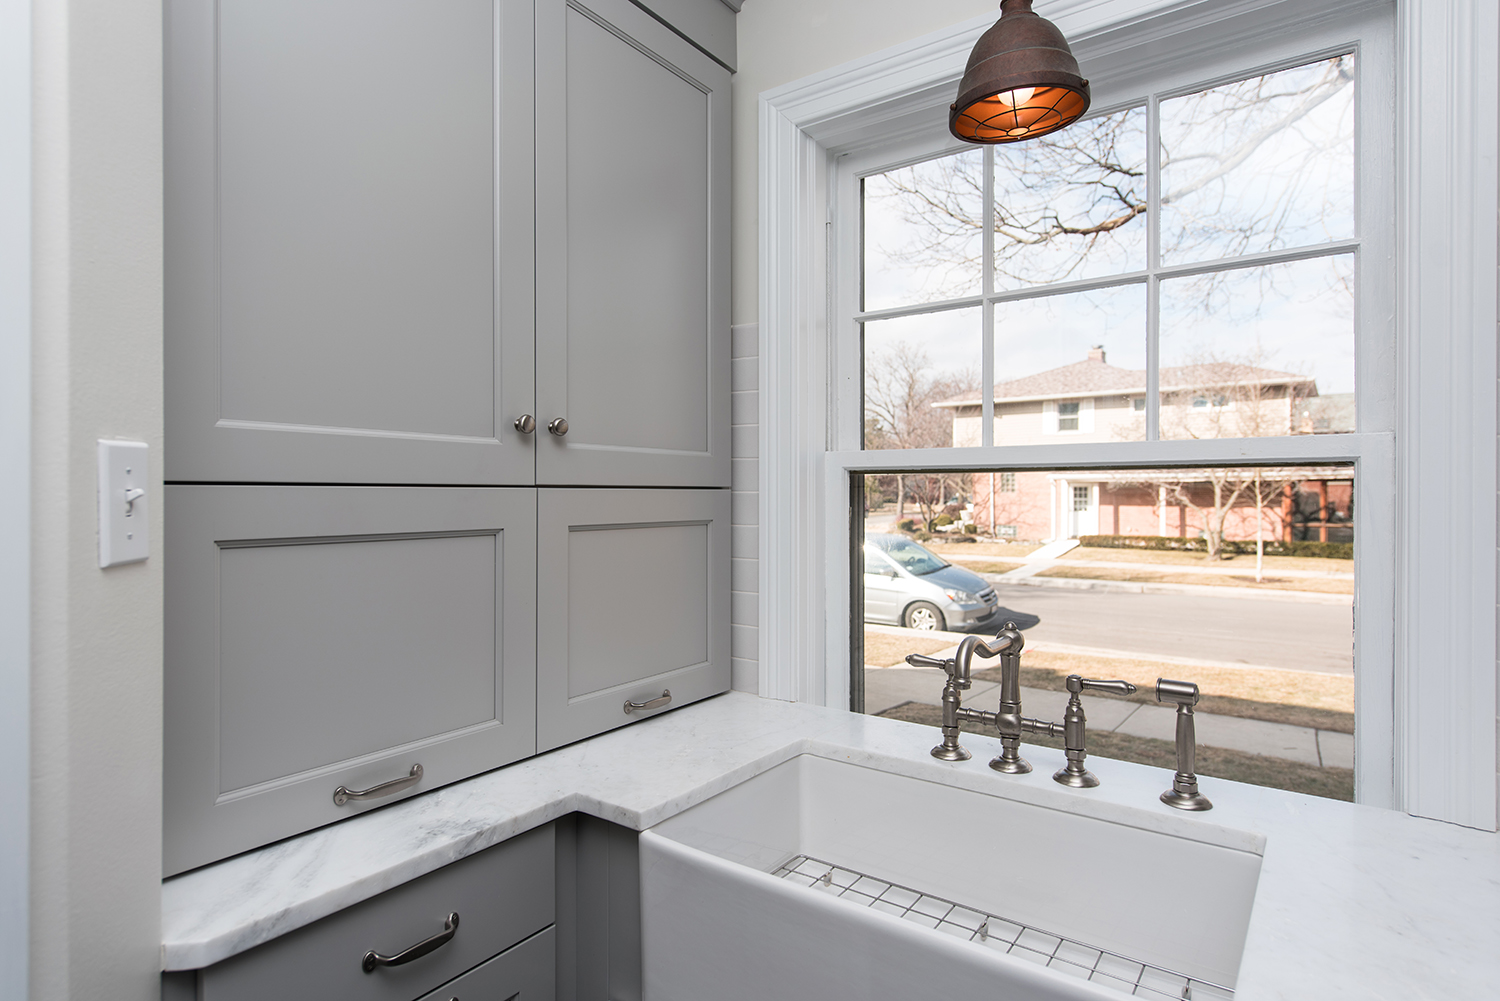 Modern-Country-Kitchen-Cabinet-Closed.jpg